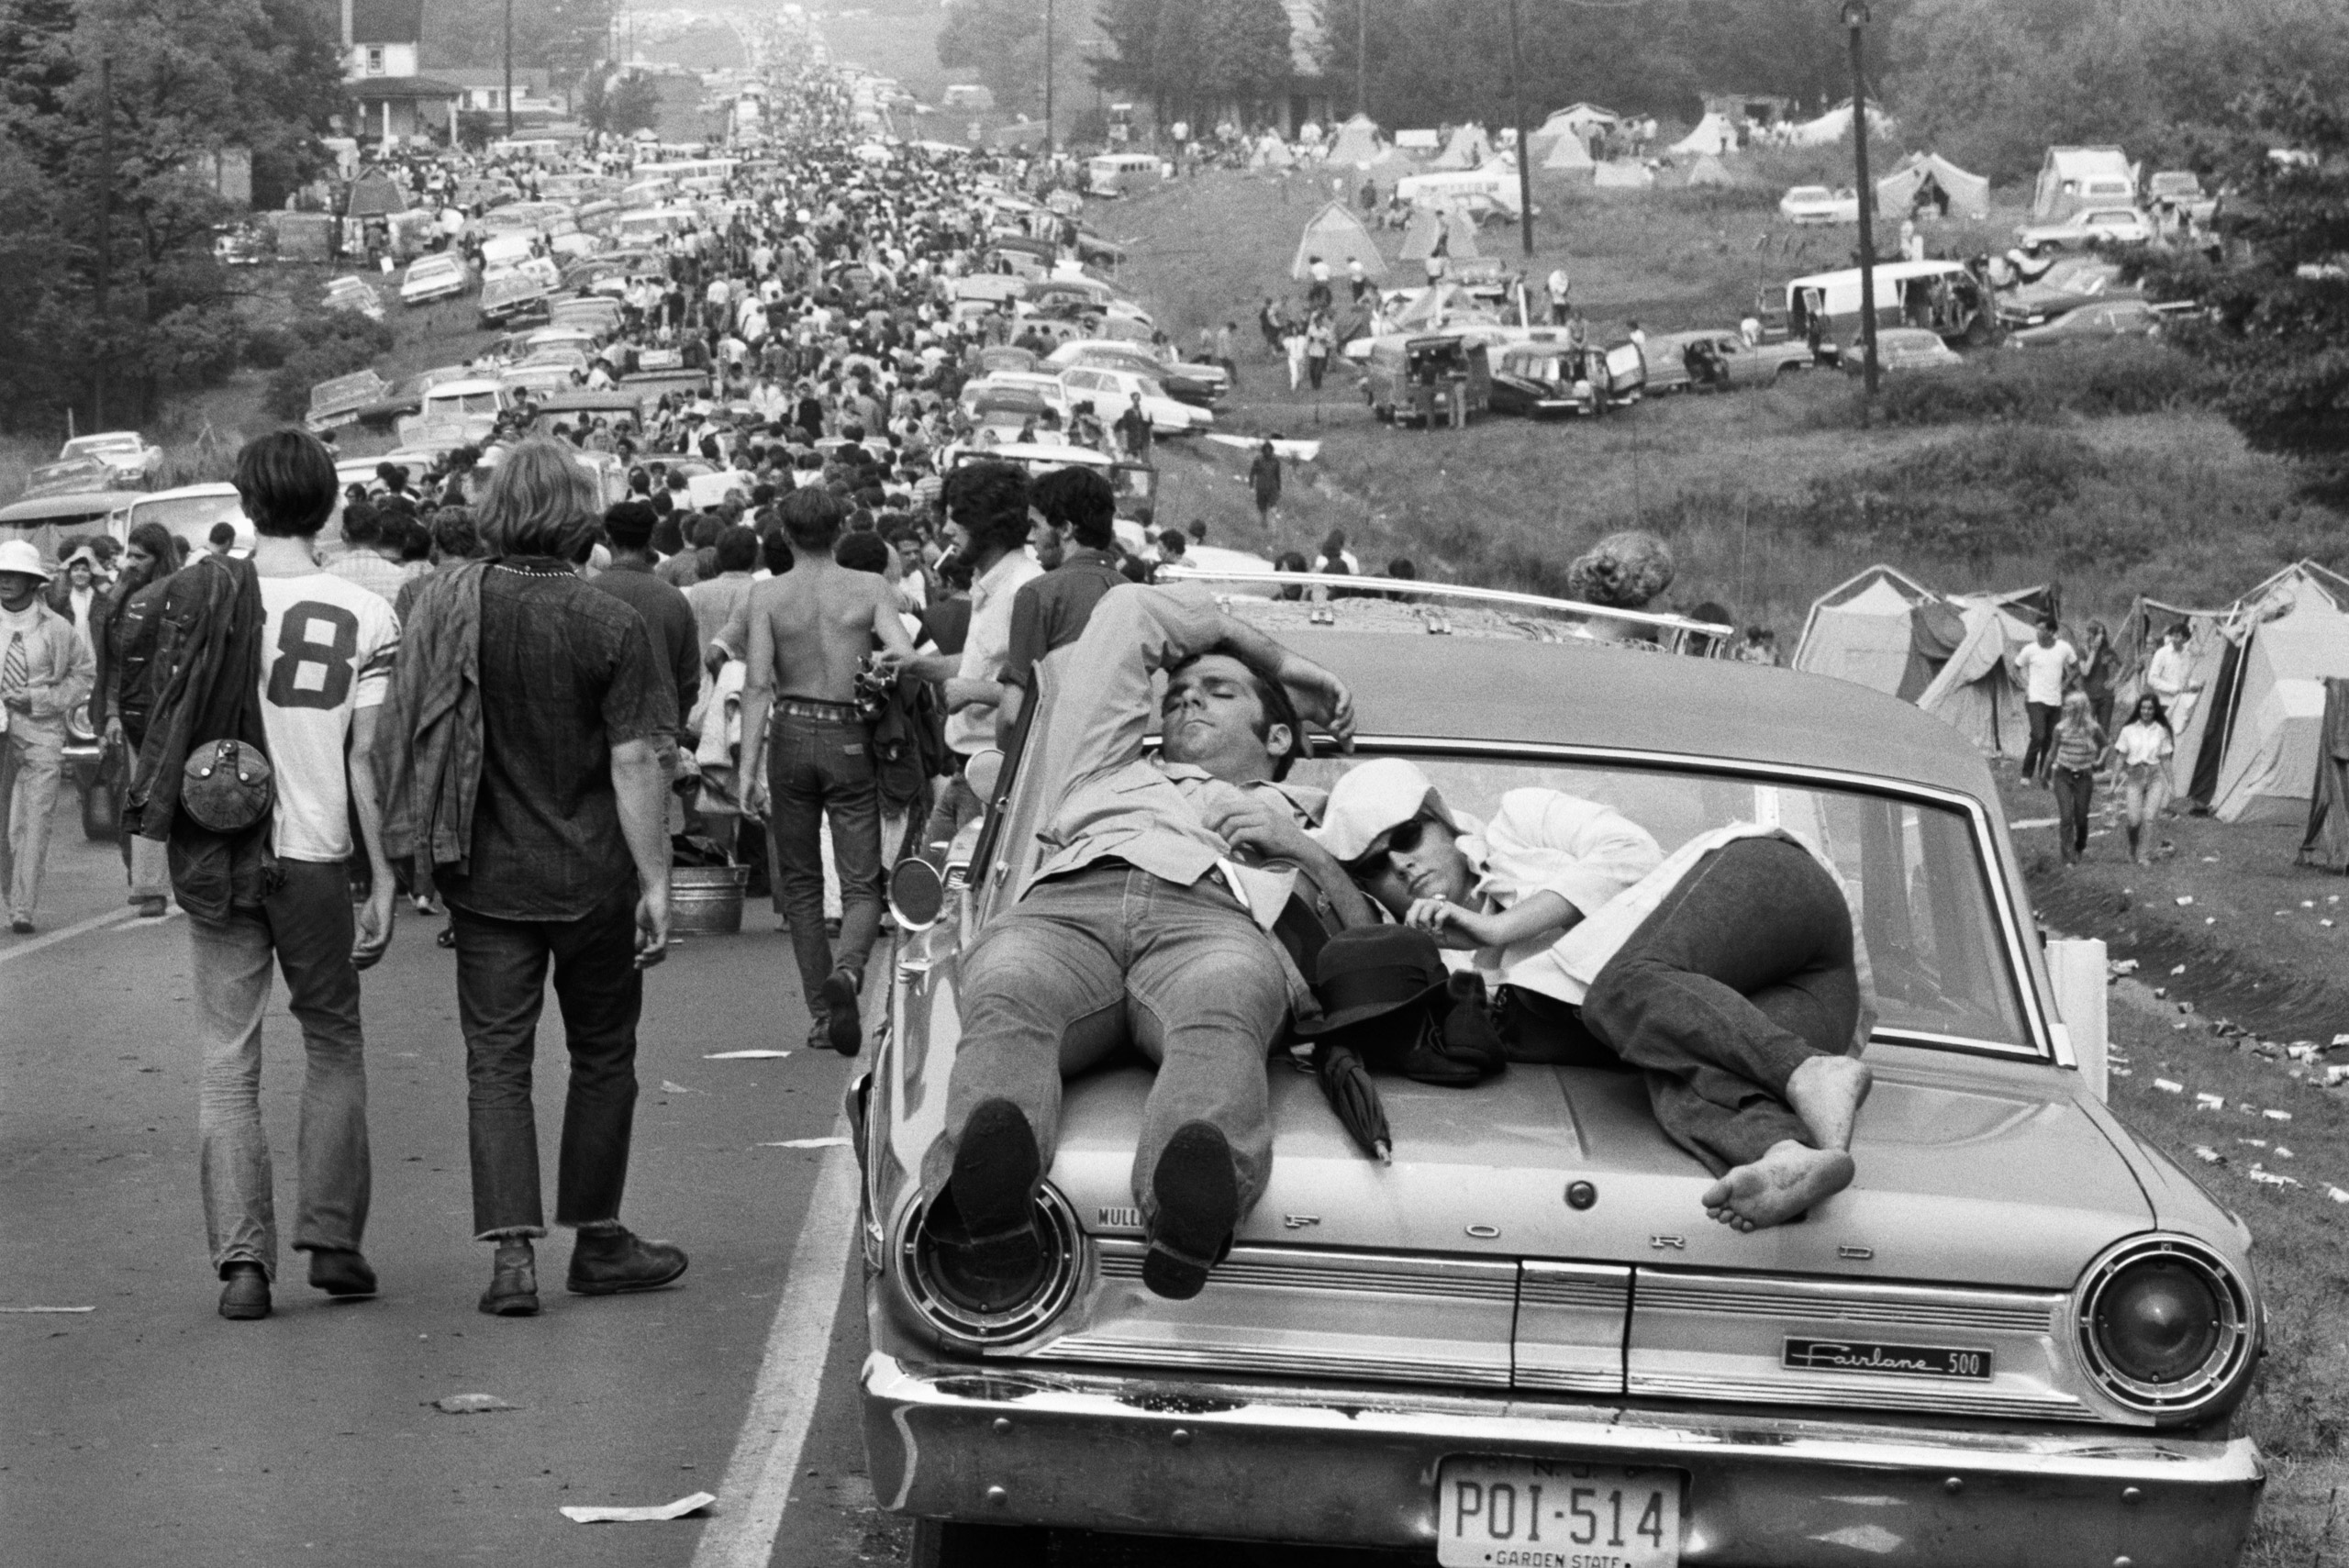 On foot, in cars, atop cars, young people leave the the Woodstock Music Festival.